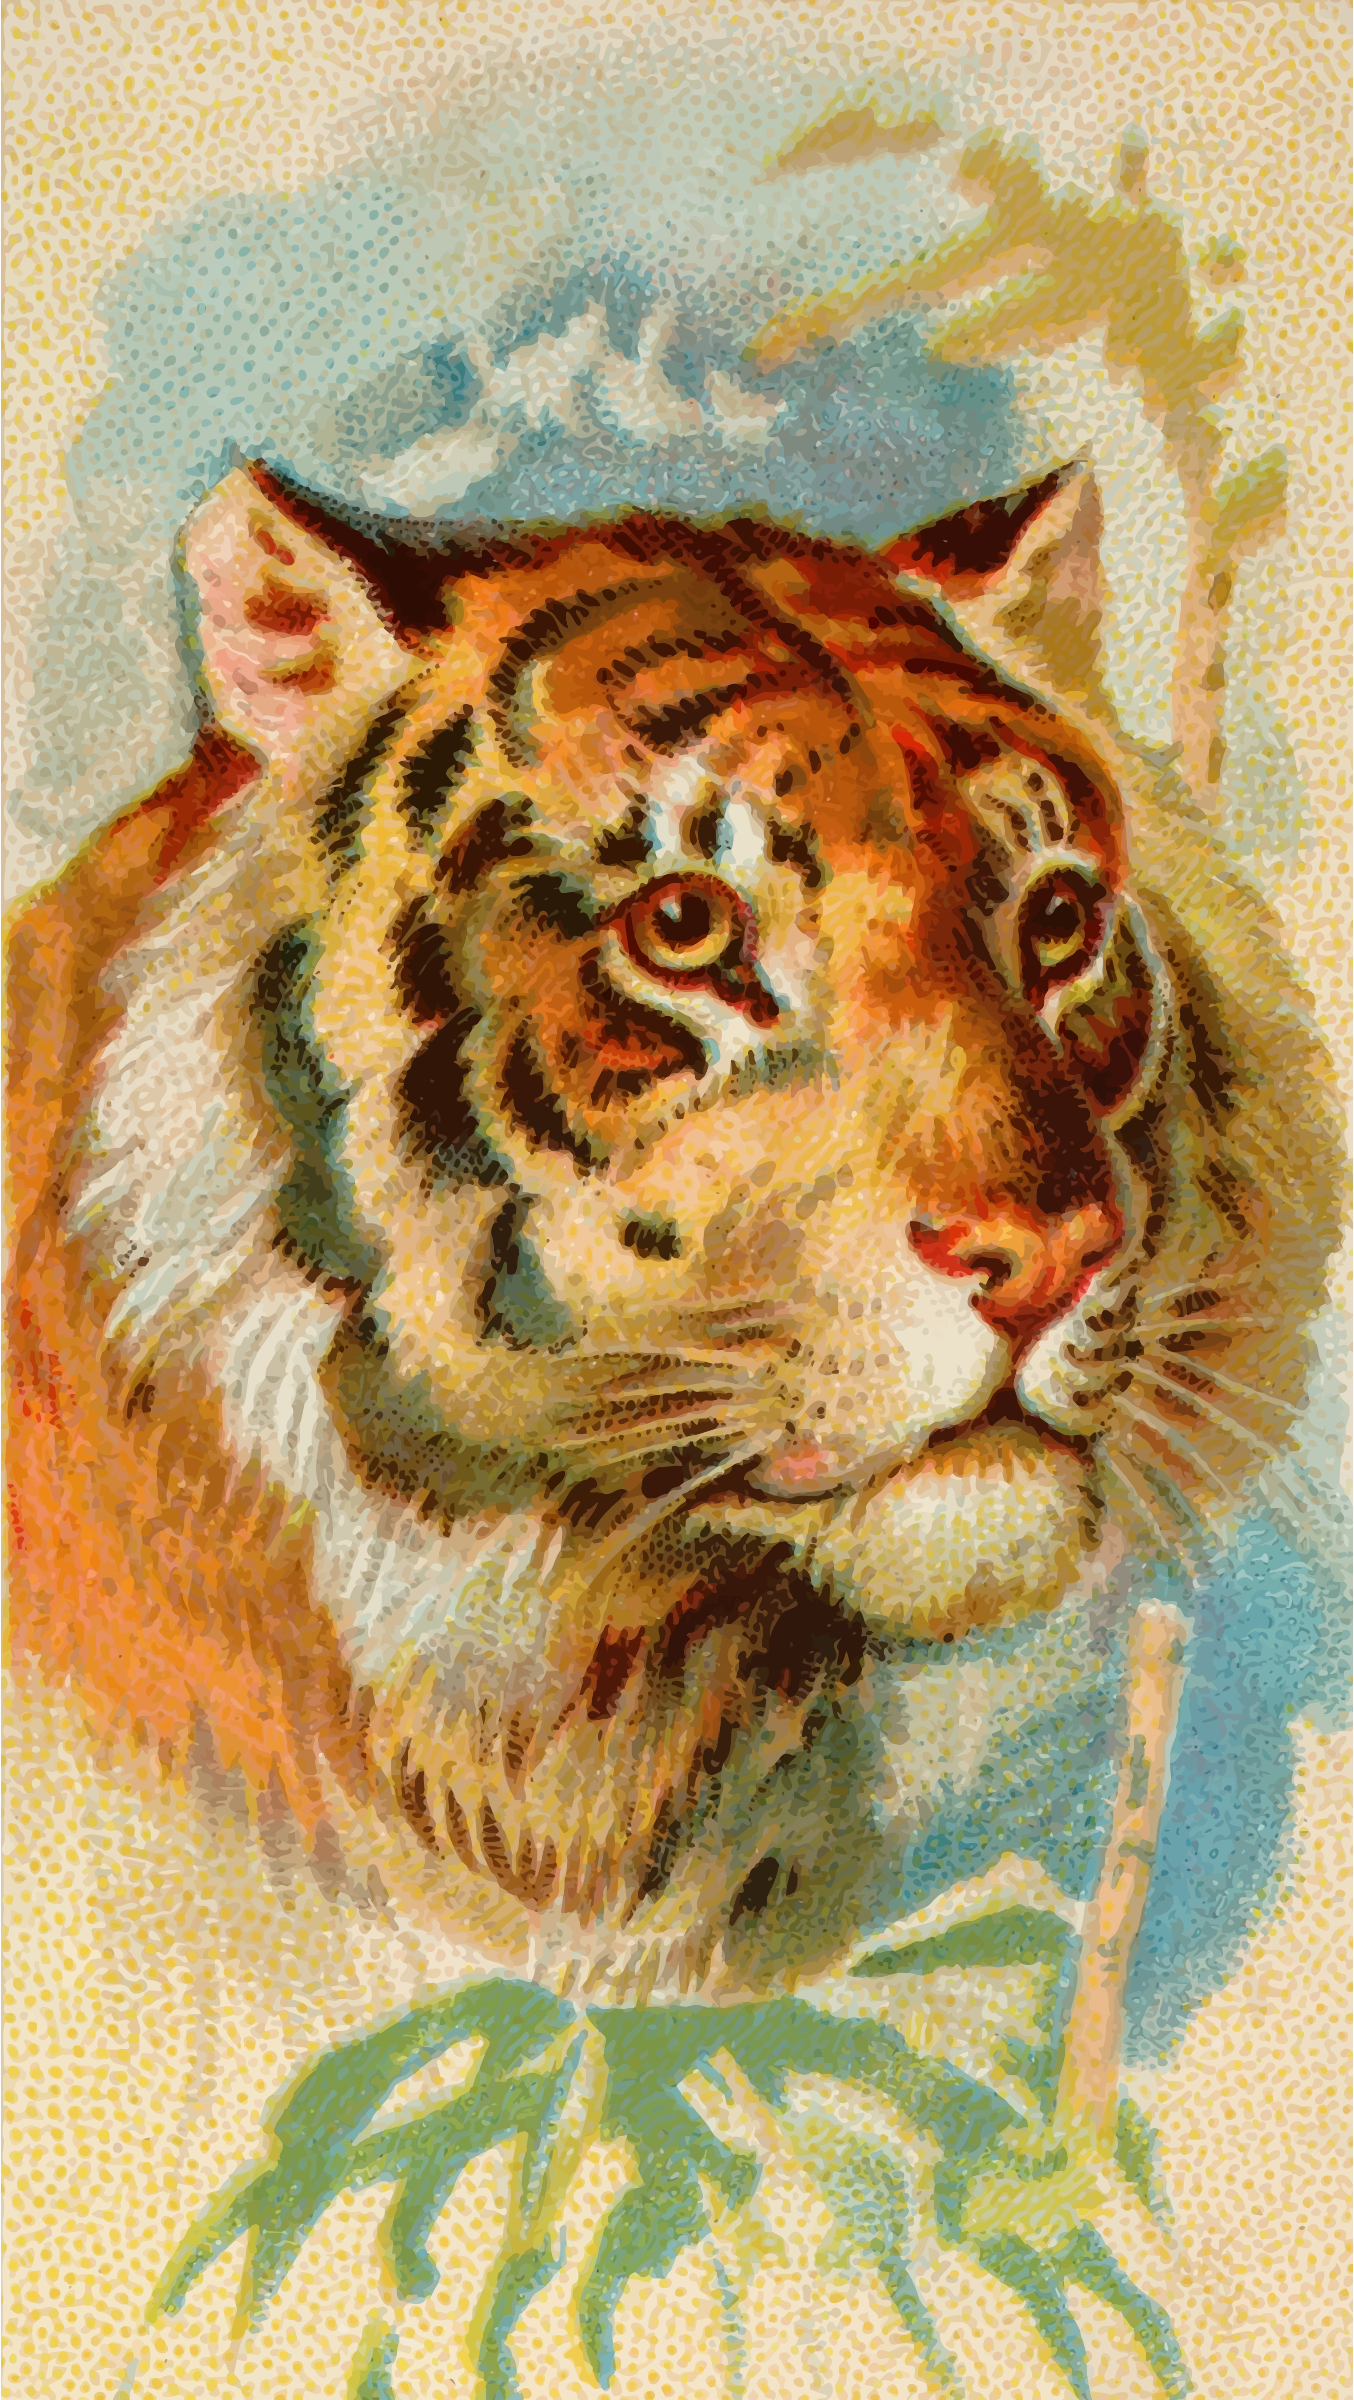 Cigarette card - Tiger by Firkin